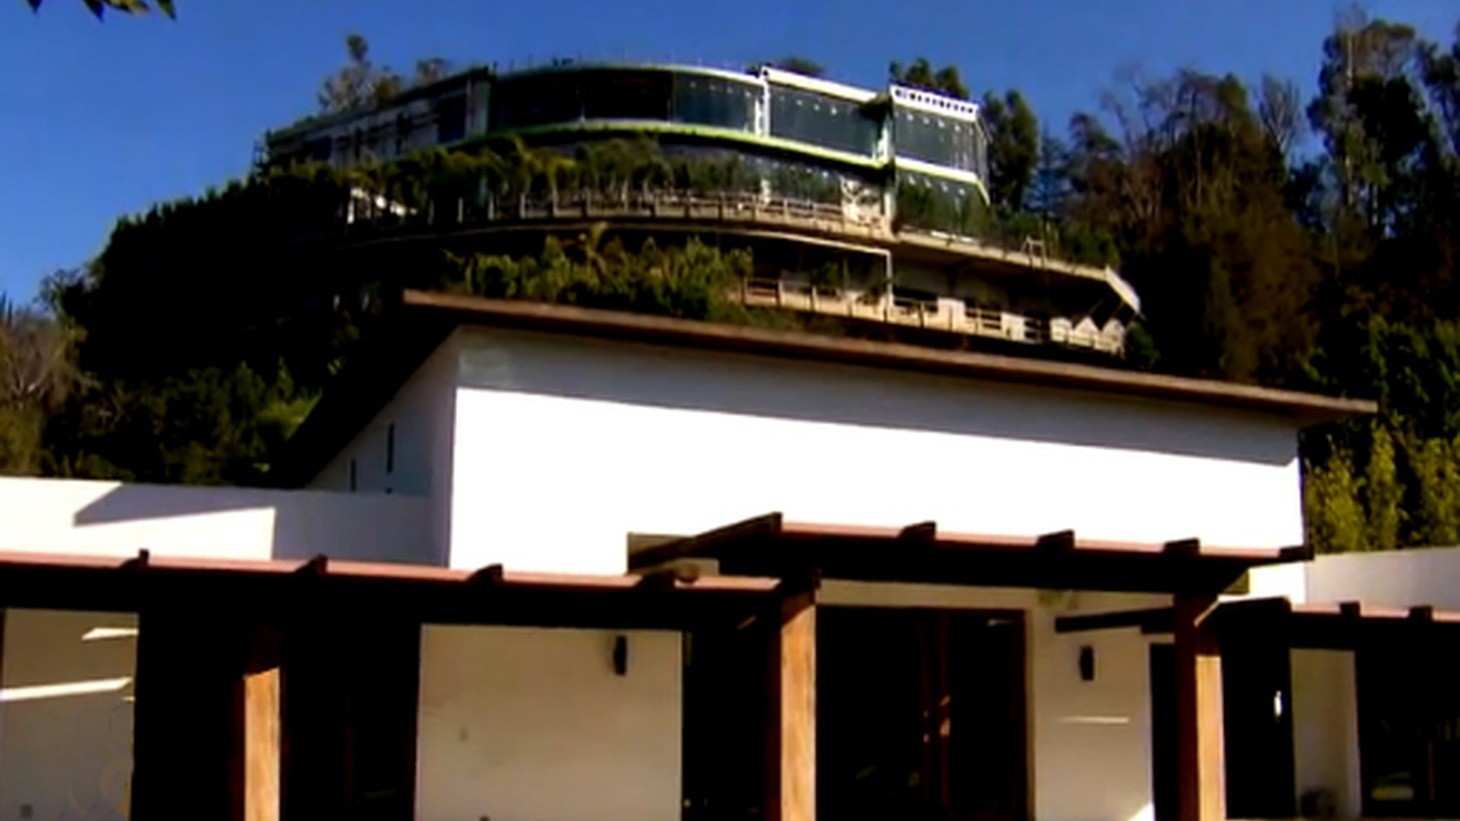 """A new generation of hyper-luxury homes with stratospheric price tags is colonizing the most gilded hillsides and canyons of Los Angeles."" That's according to the New York Times, in a series about shell companies that hide the real ownership of such properties--not just from celebrity hounds but local and international law enforcement. We hear about the ""Starship Enterprise"" and other monstrosities in Bel-Air and around the country."